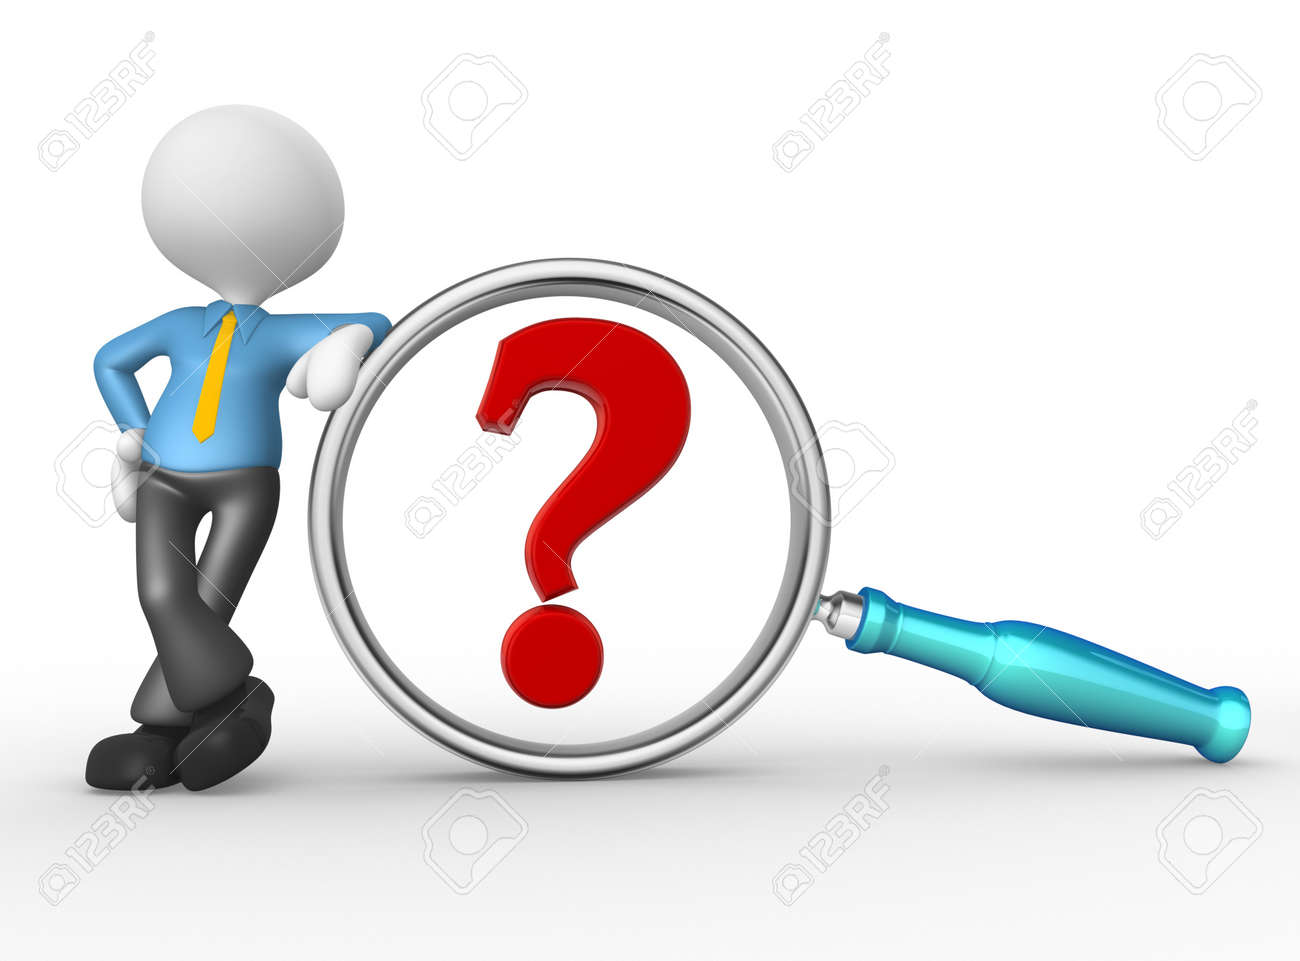 3d person with magnifying glass and question mark stock images image - 3d People Man Person With A Magnifying Glass And A Question Mark The